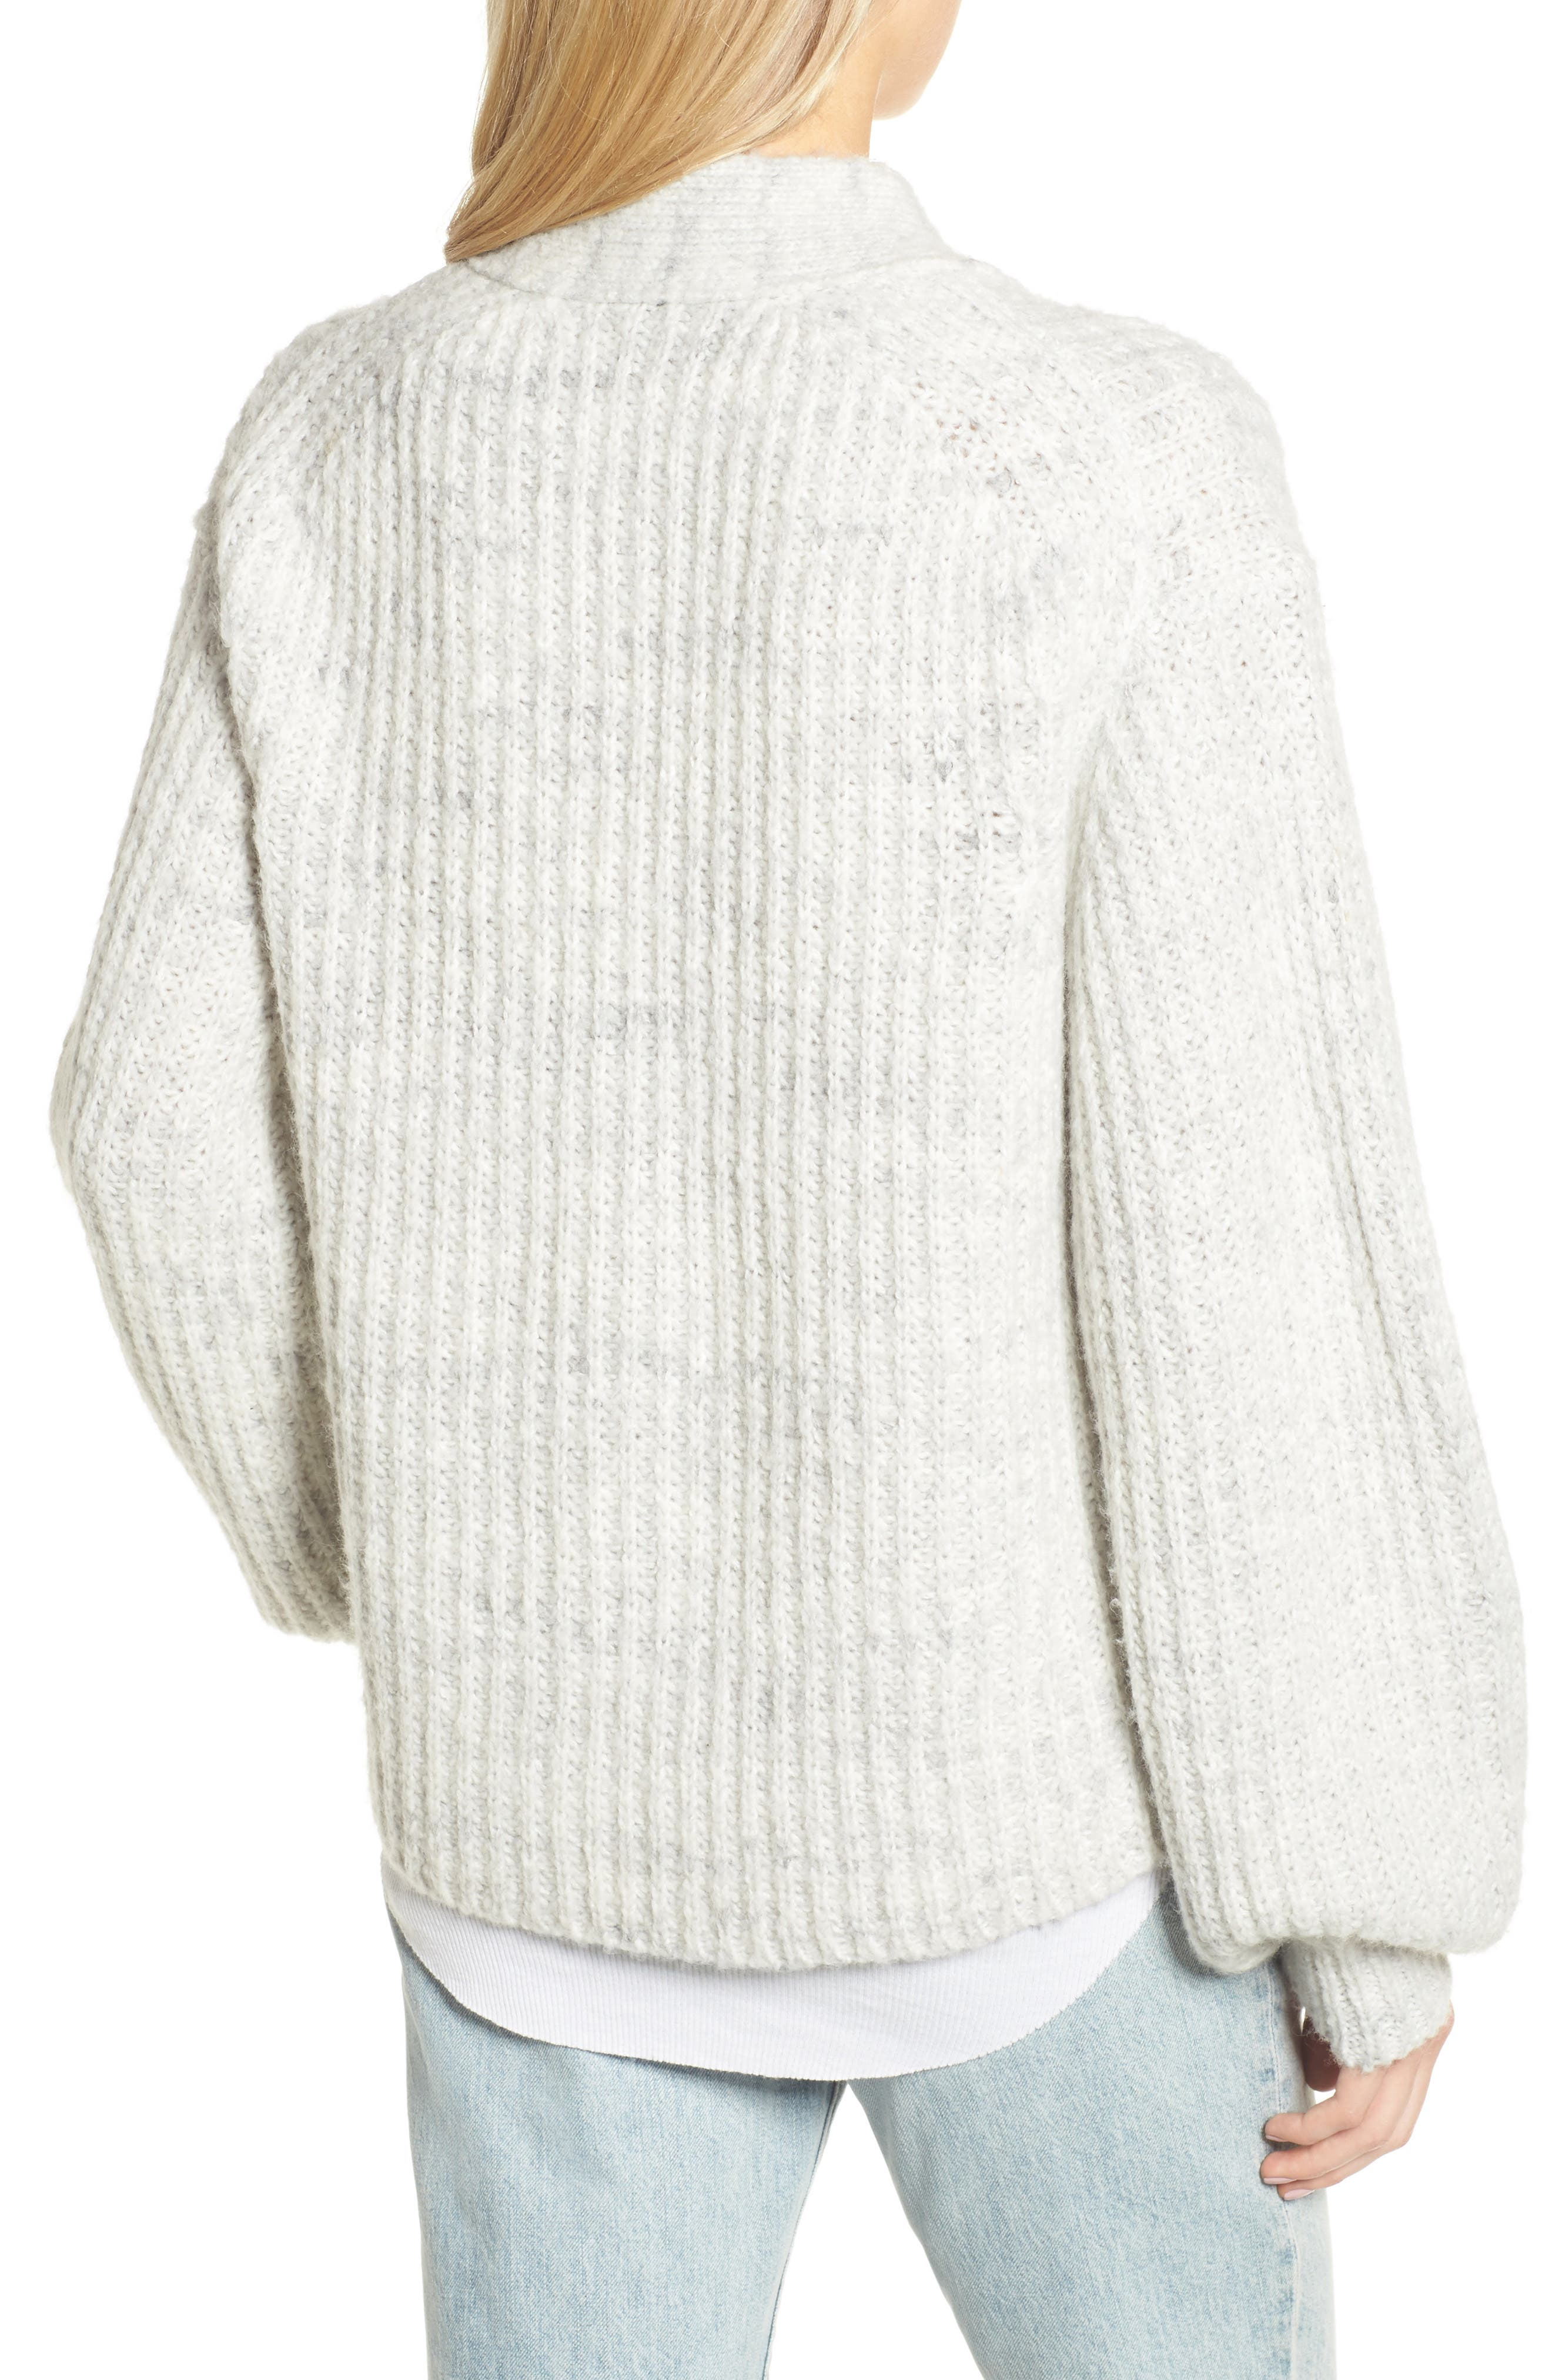 Oversize Cardigan,                             Alternate thumbnail 2, color,                             020